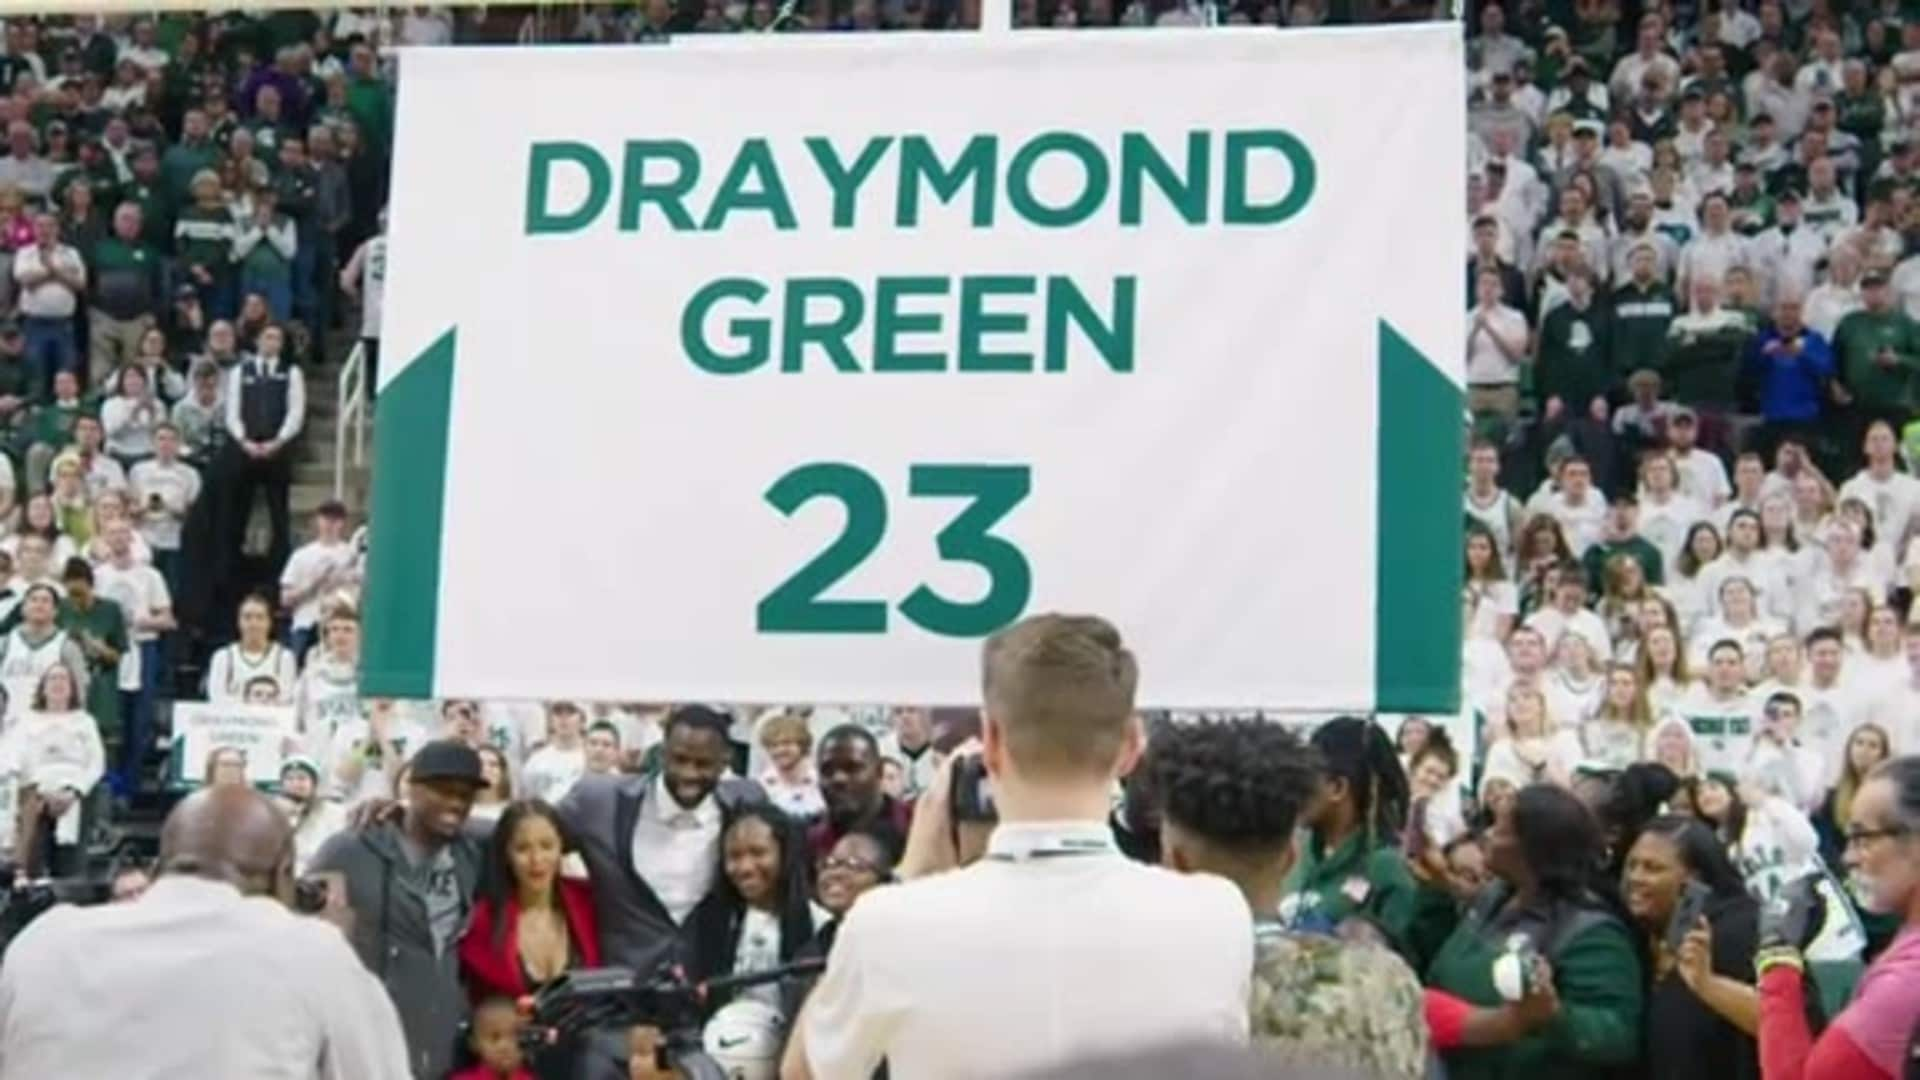 All Access: Draymond Green's No. 23 Retired by Michigan State